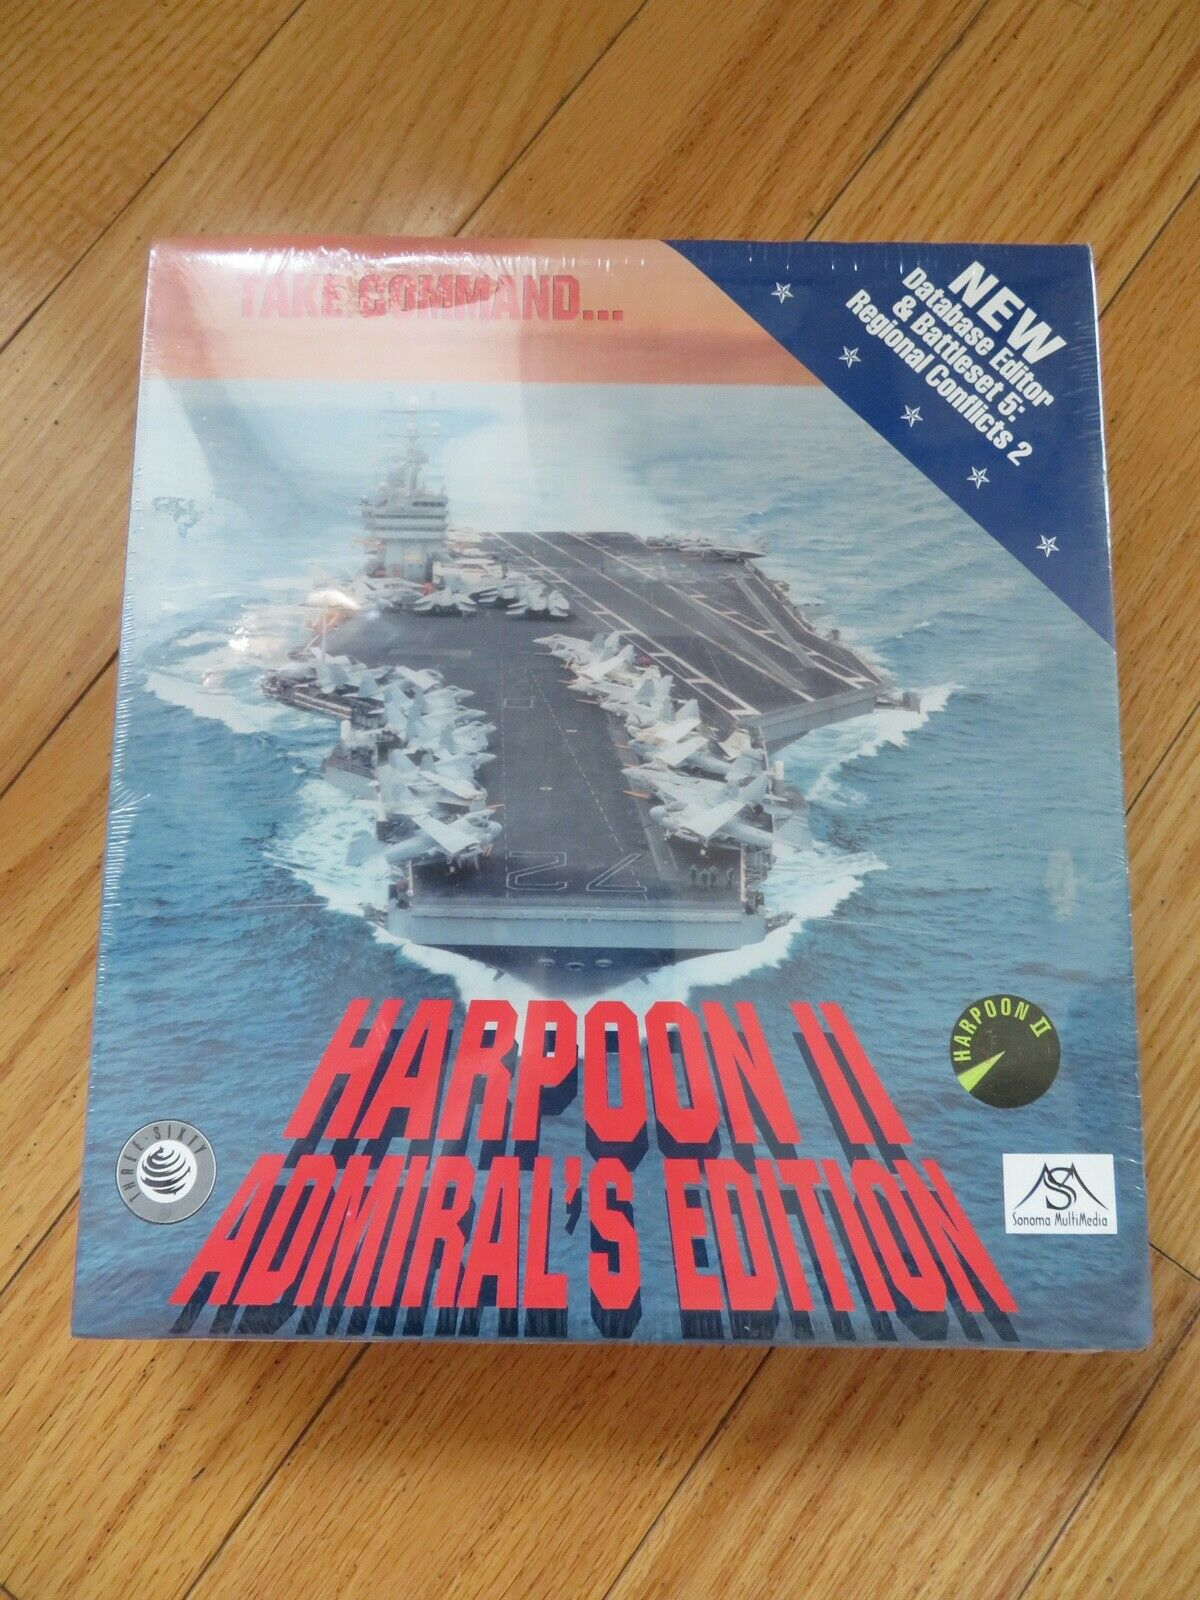 Computer Games - 1996 HARPOON II Admiral's Edition CD~ROM computer game